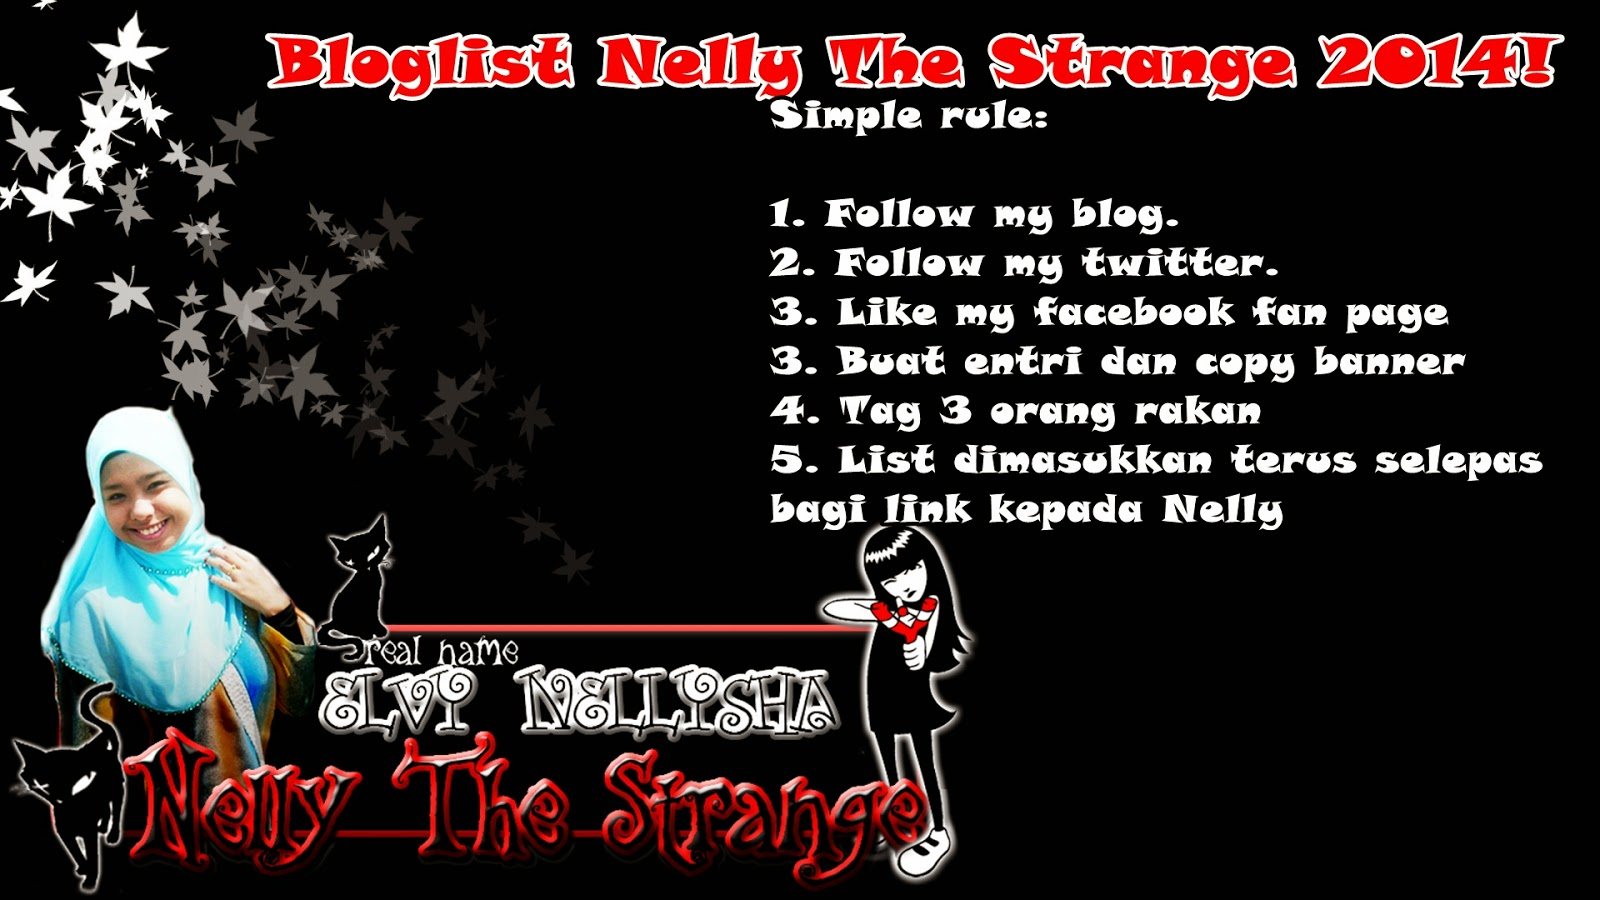 BLOGLIST NELLY THE STRANGE 2014 SIMPLE